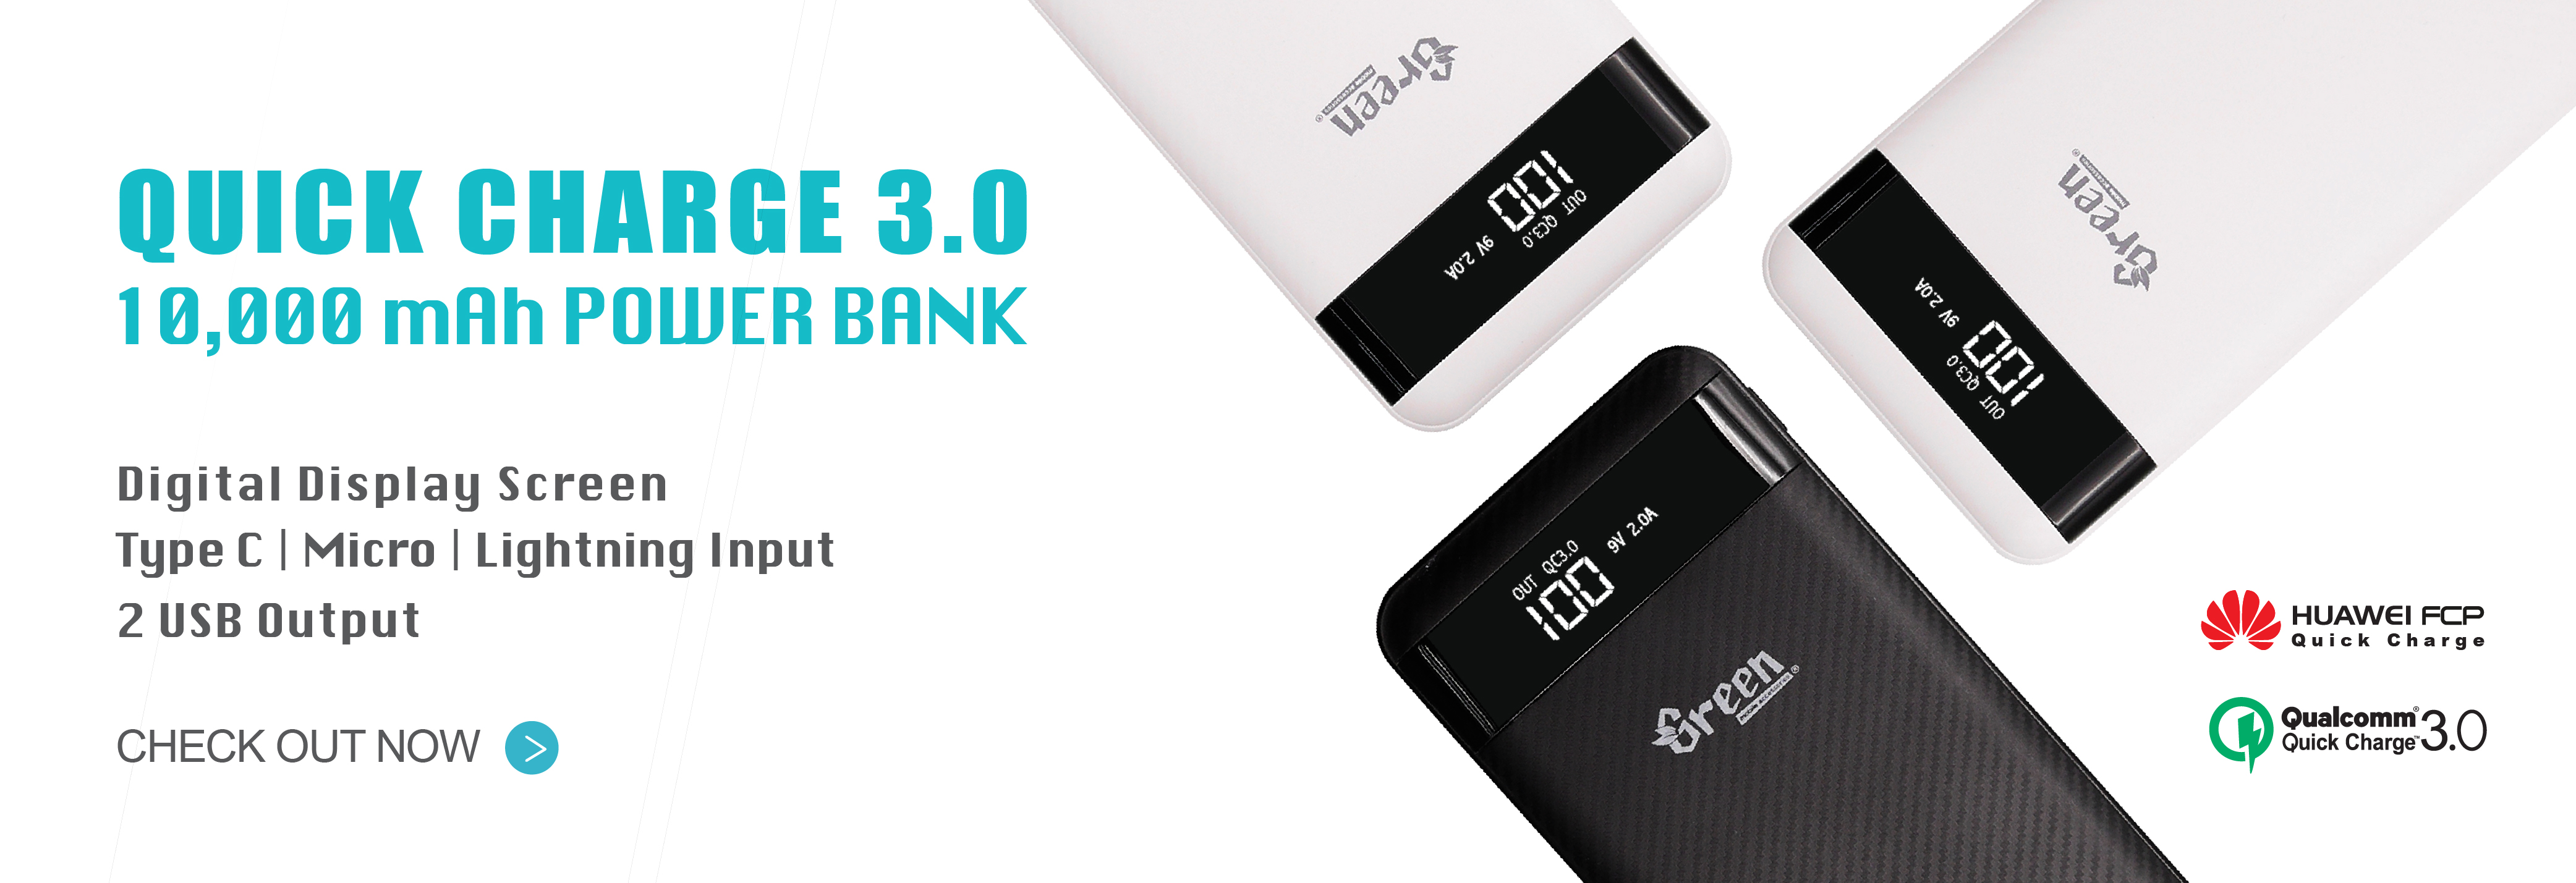 Quick Charge 3.0 10,000mAh 2 USB Port | Power Bank GR-PBQC200